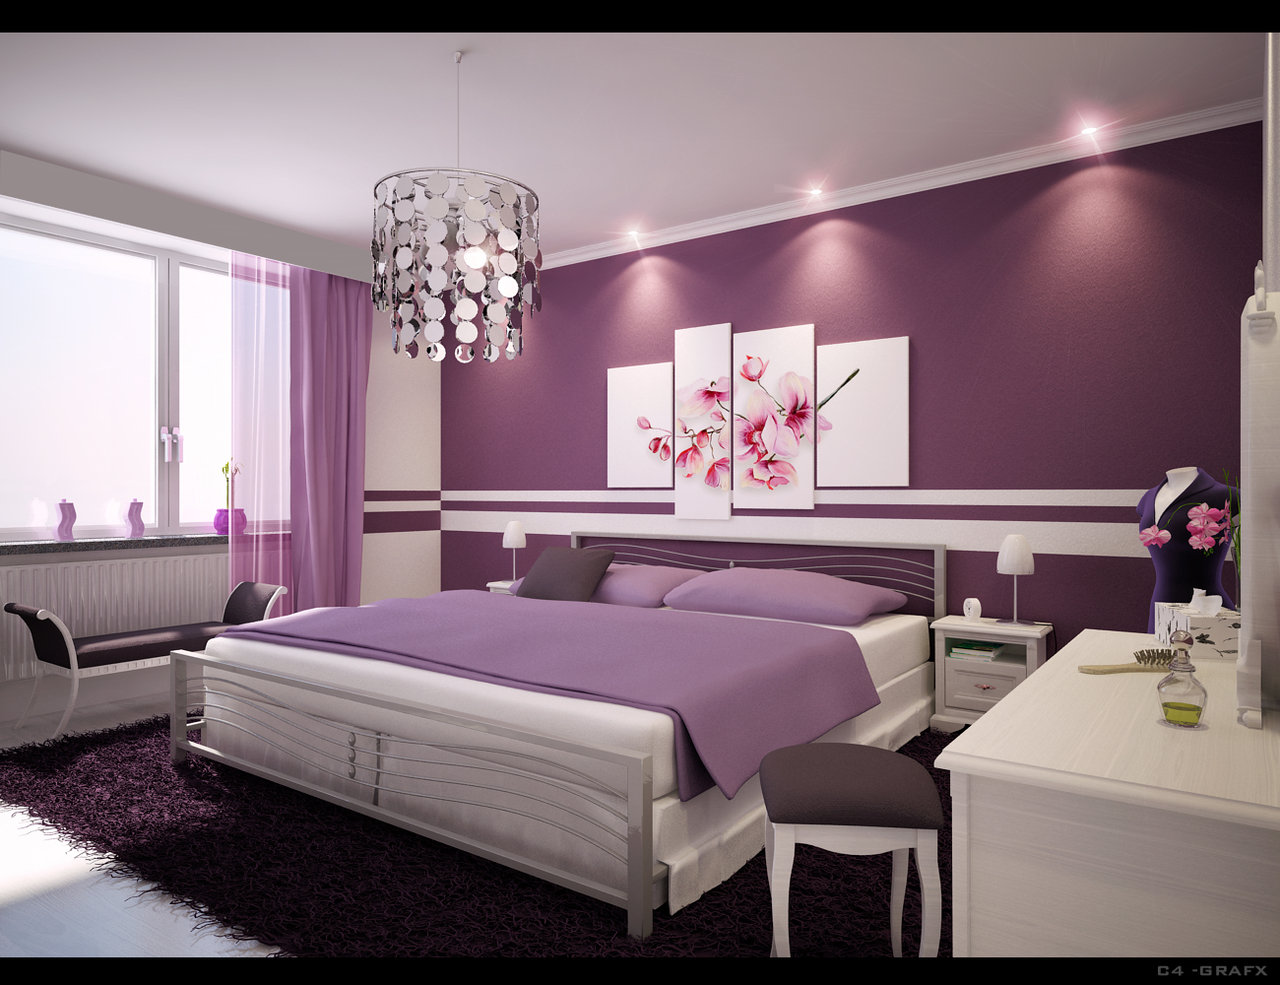 Interior design bedroom modern house plans designs 2014 for Home bedroom design photos